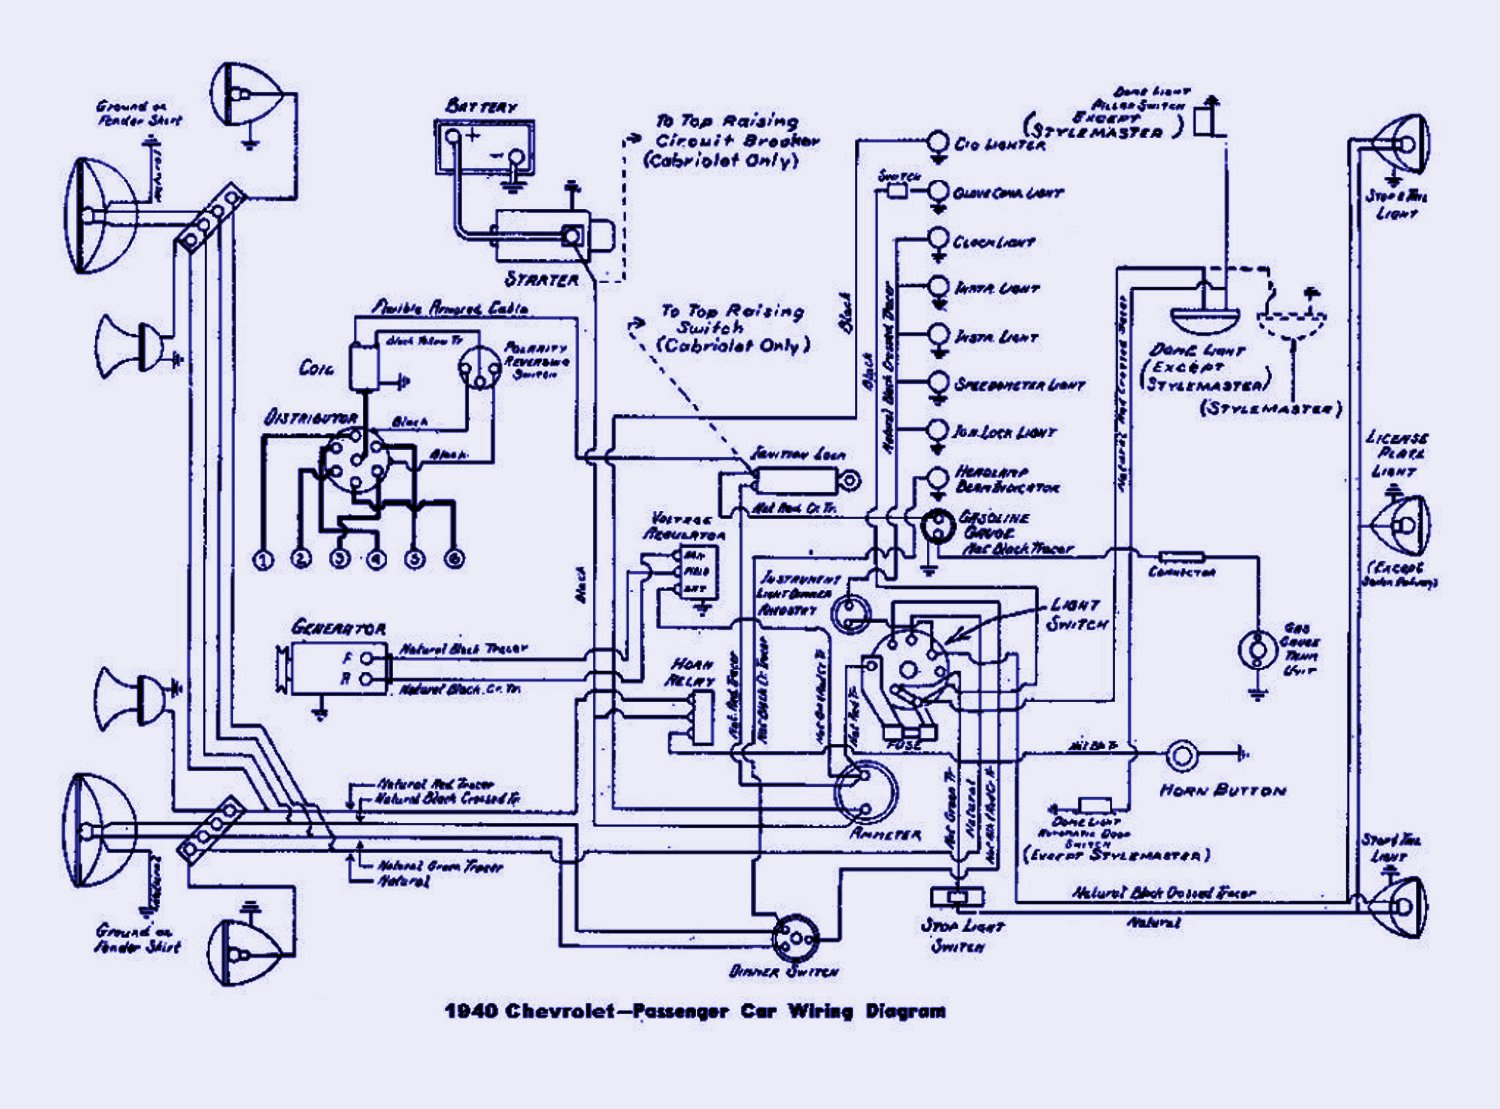 Electricity Wiring Diagrams Iron Carbide Equilibrium Diagram Circuit Panel September 2013